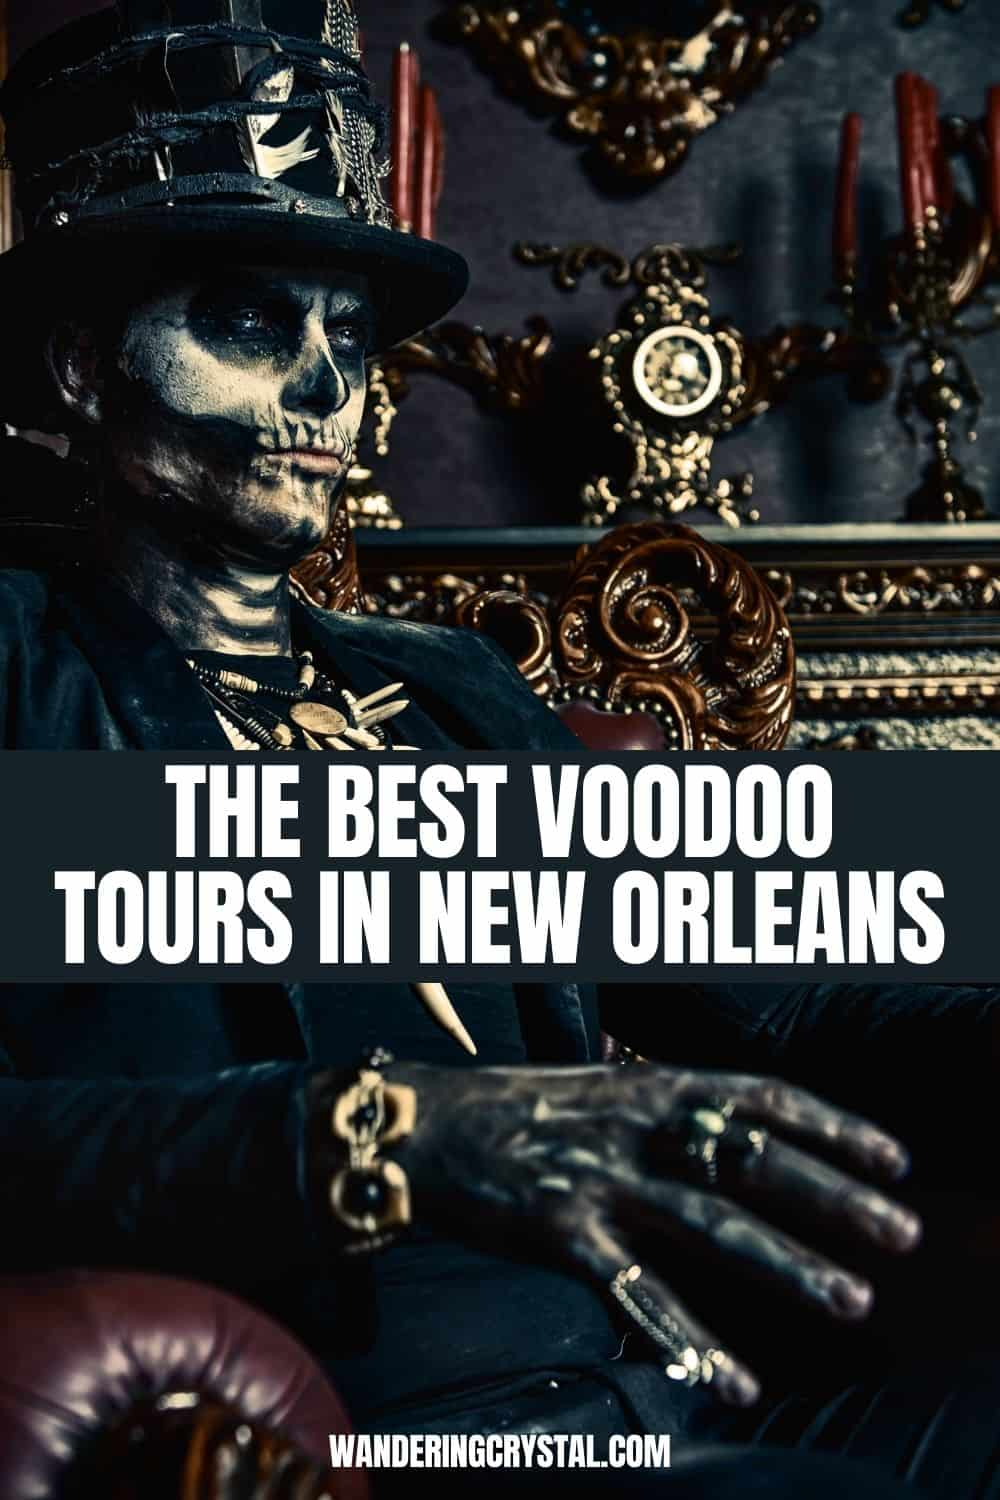 The Best Voodoo Tours in New Orleans New Orleans Voodoo Tour